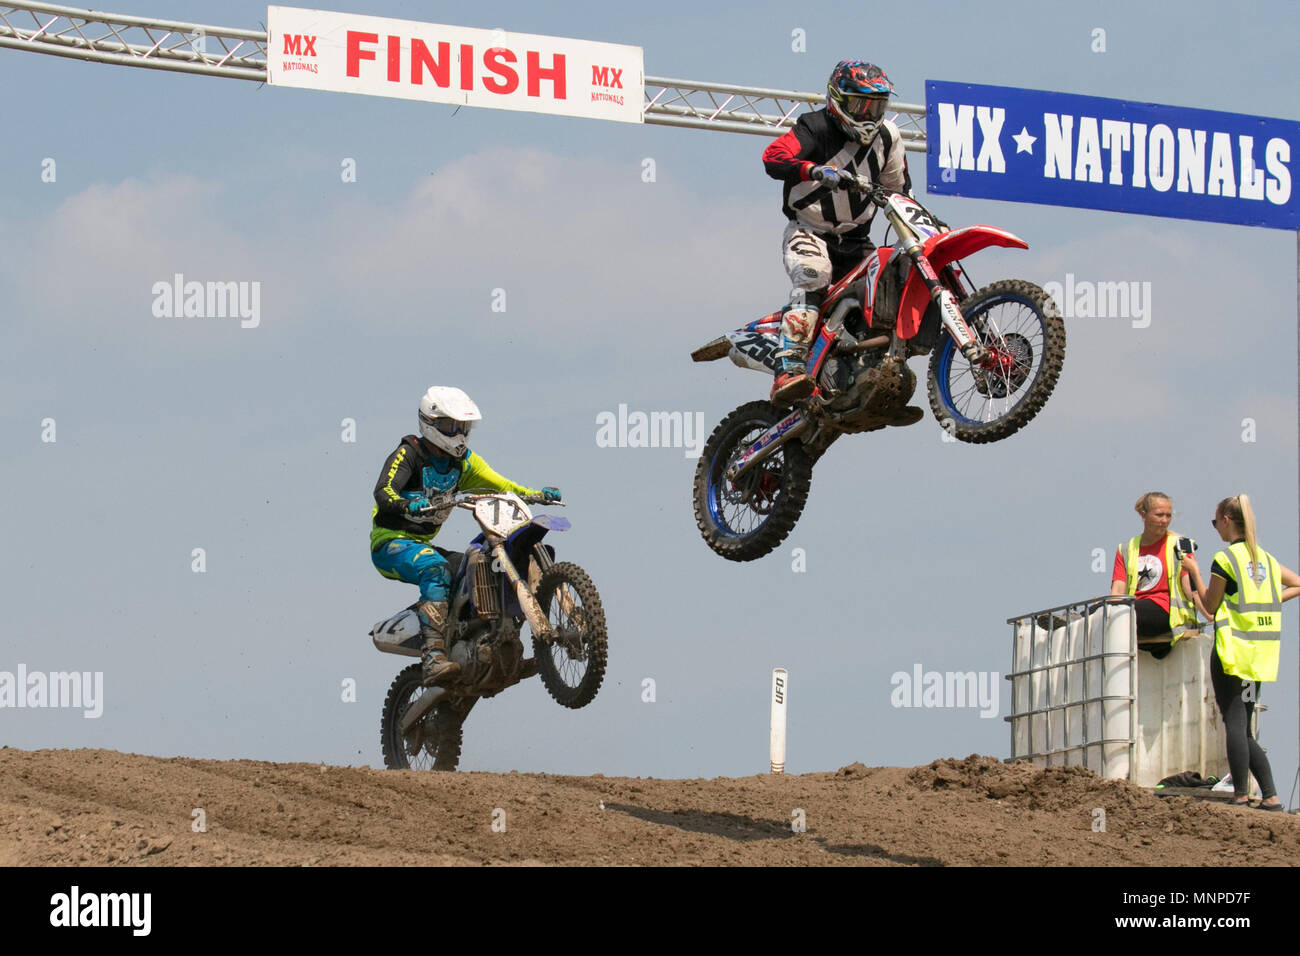 Preston, UK. 19/05/2018.  Michelin MX Nationals moto cross, moto cross,  race, sport, motorcycle, motorcycle racing, motorycles, scrambler bikes, , speed, bike, competition, motor, extreme, motorbike, rider, transportation, power, cycle, jump, riding, danger, racer,  outdoor, fast, motorsport, biker, fun, offroad, transport, dangerous event in dockland. Motocross by RHL Activities Ltd at Preston Docks British Championships.   Credit: MediaWorldImages/AlamyLiveNews - Stock Image